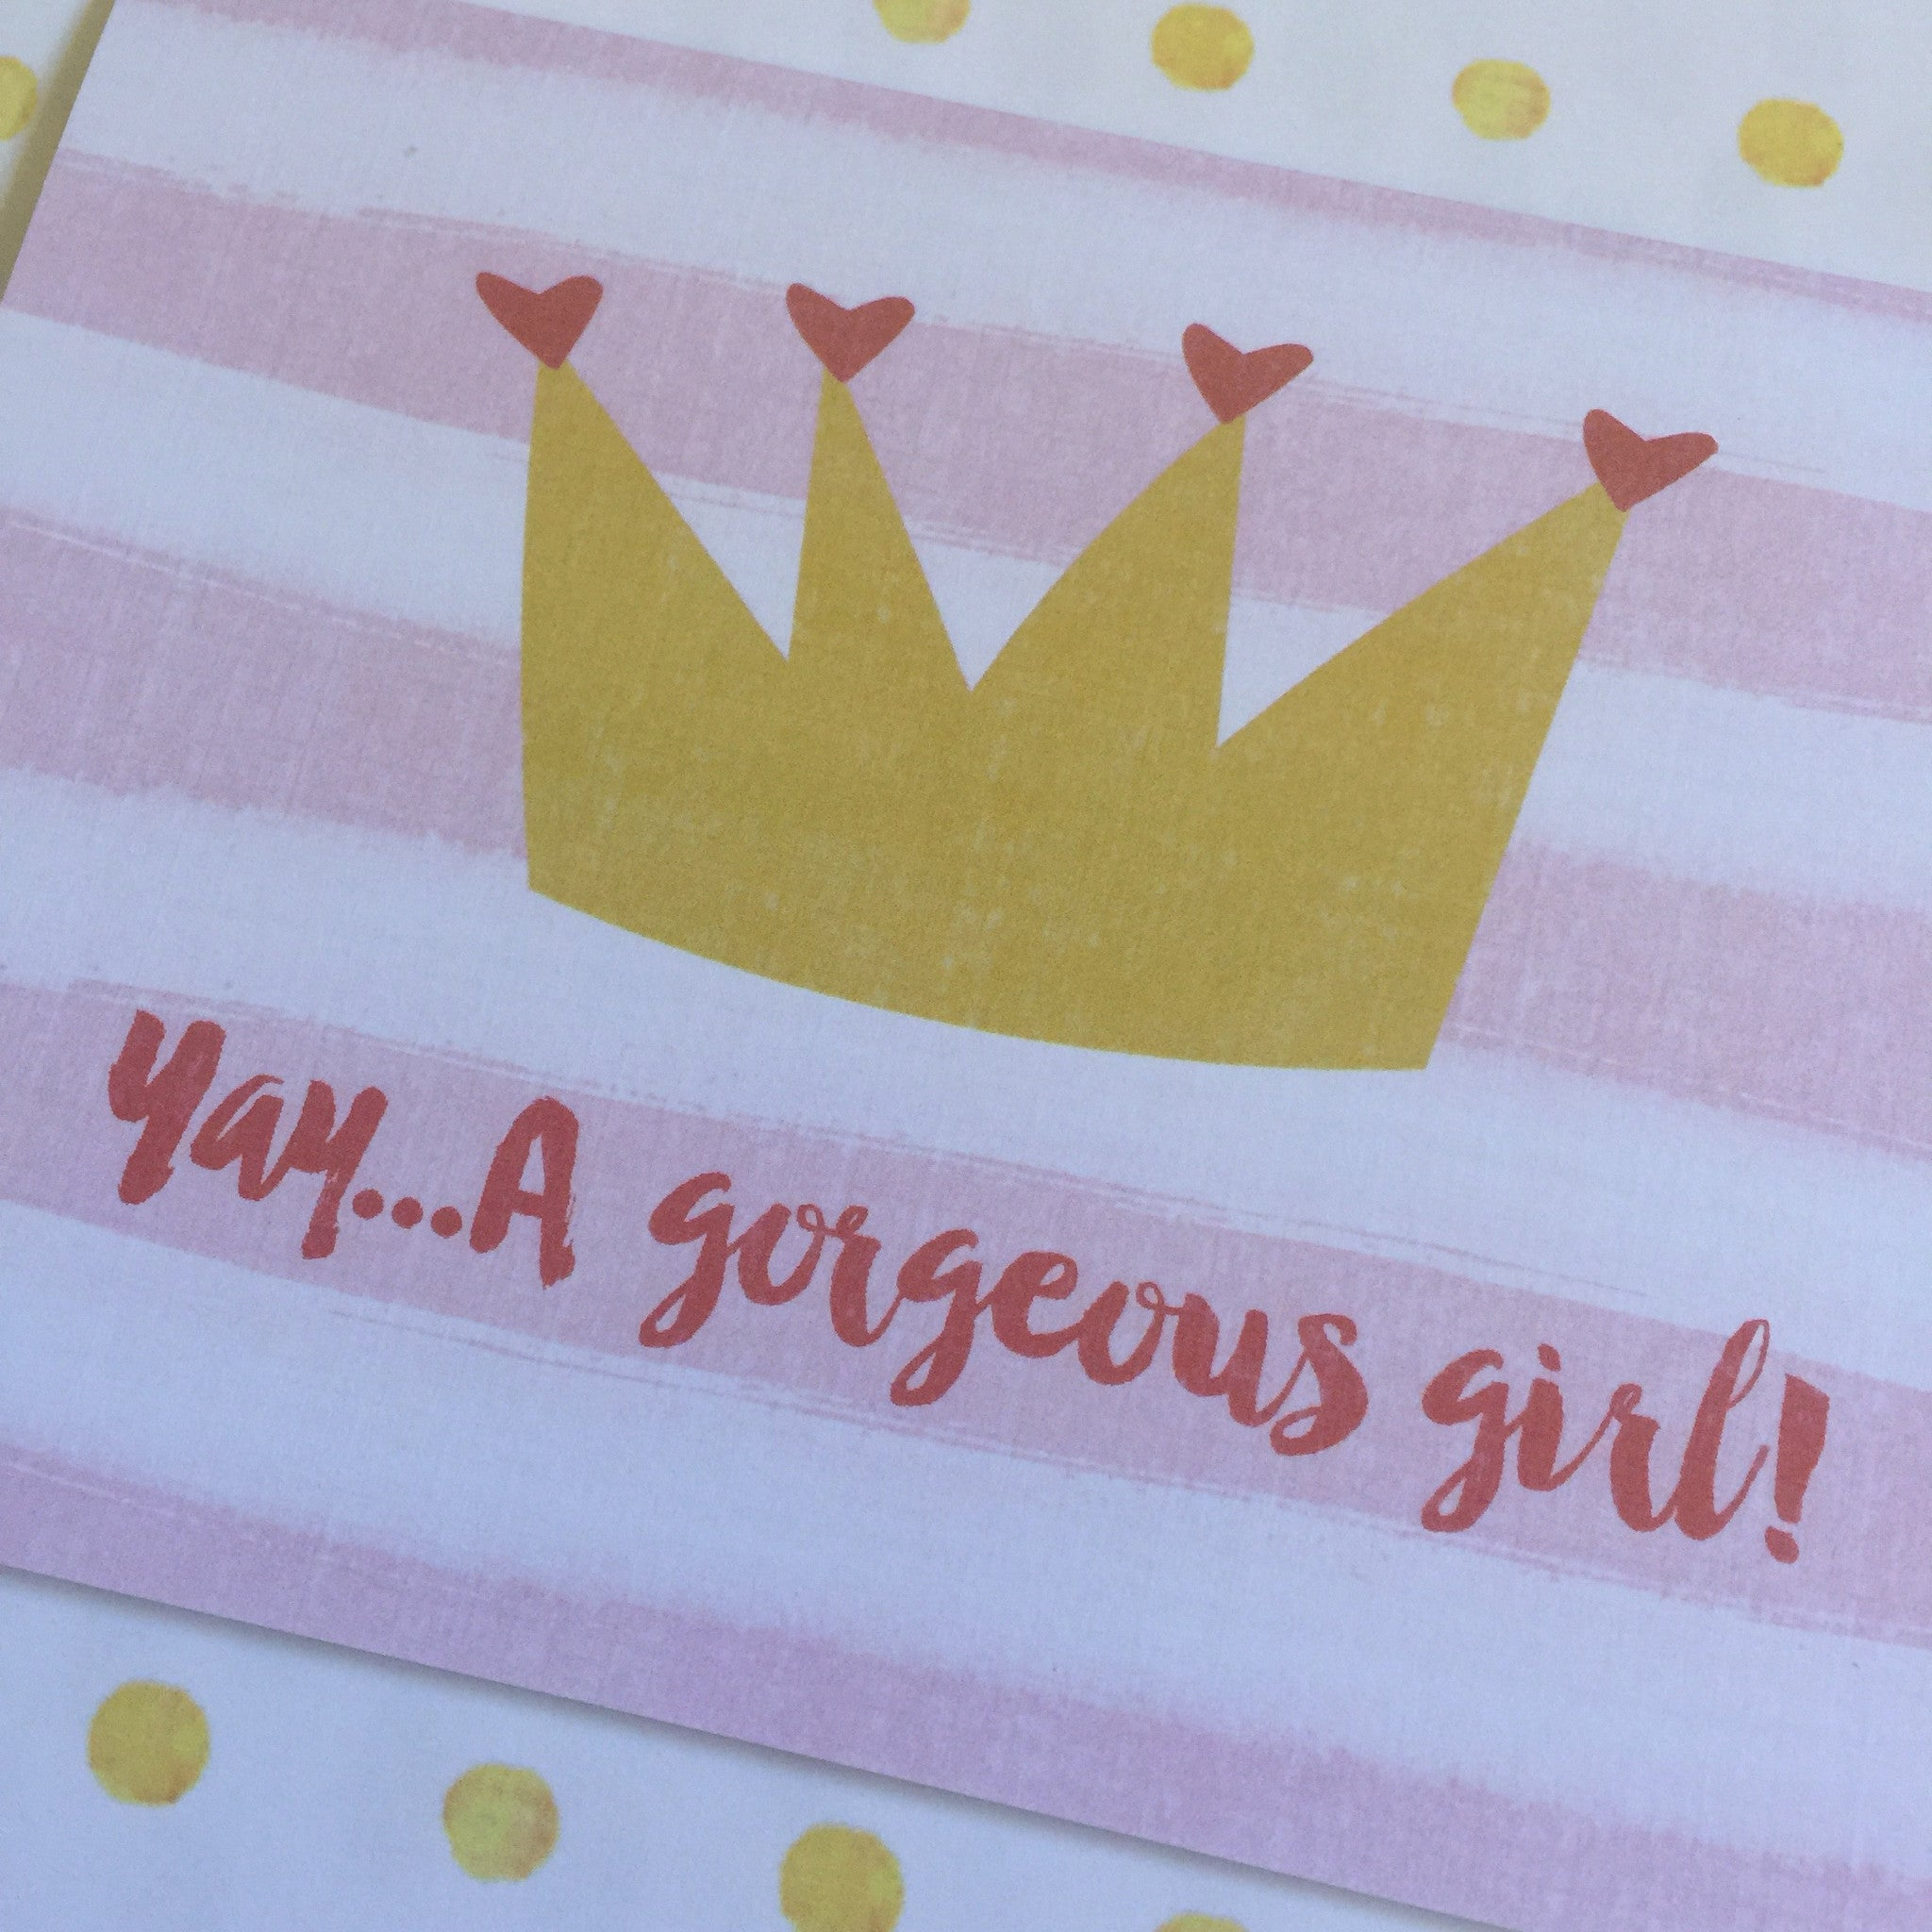 Yay.... A Gorgeous Girl Card